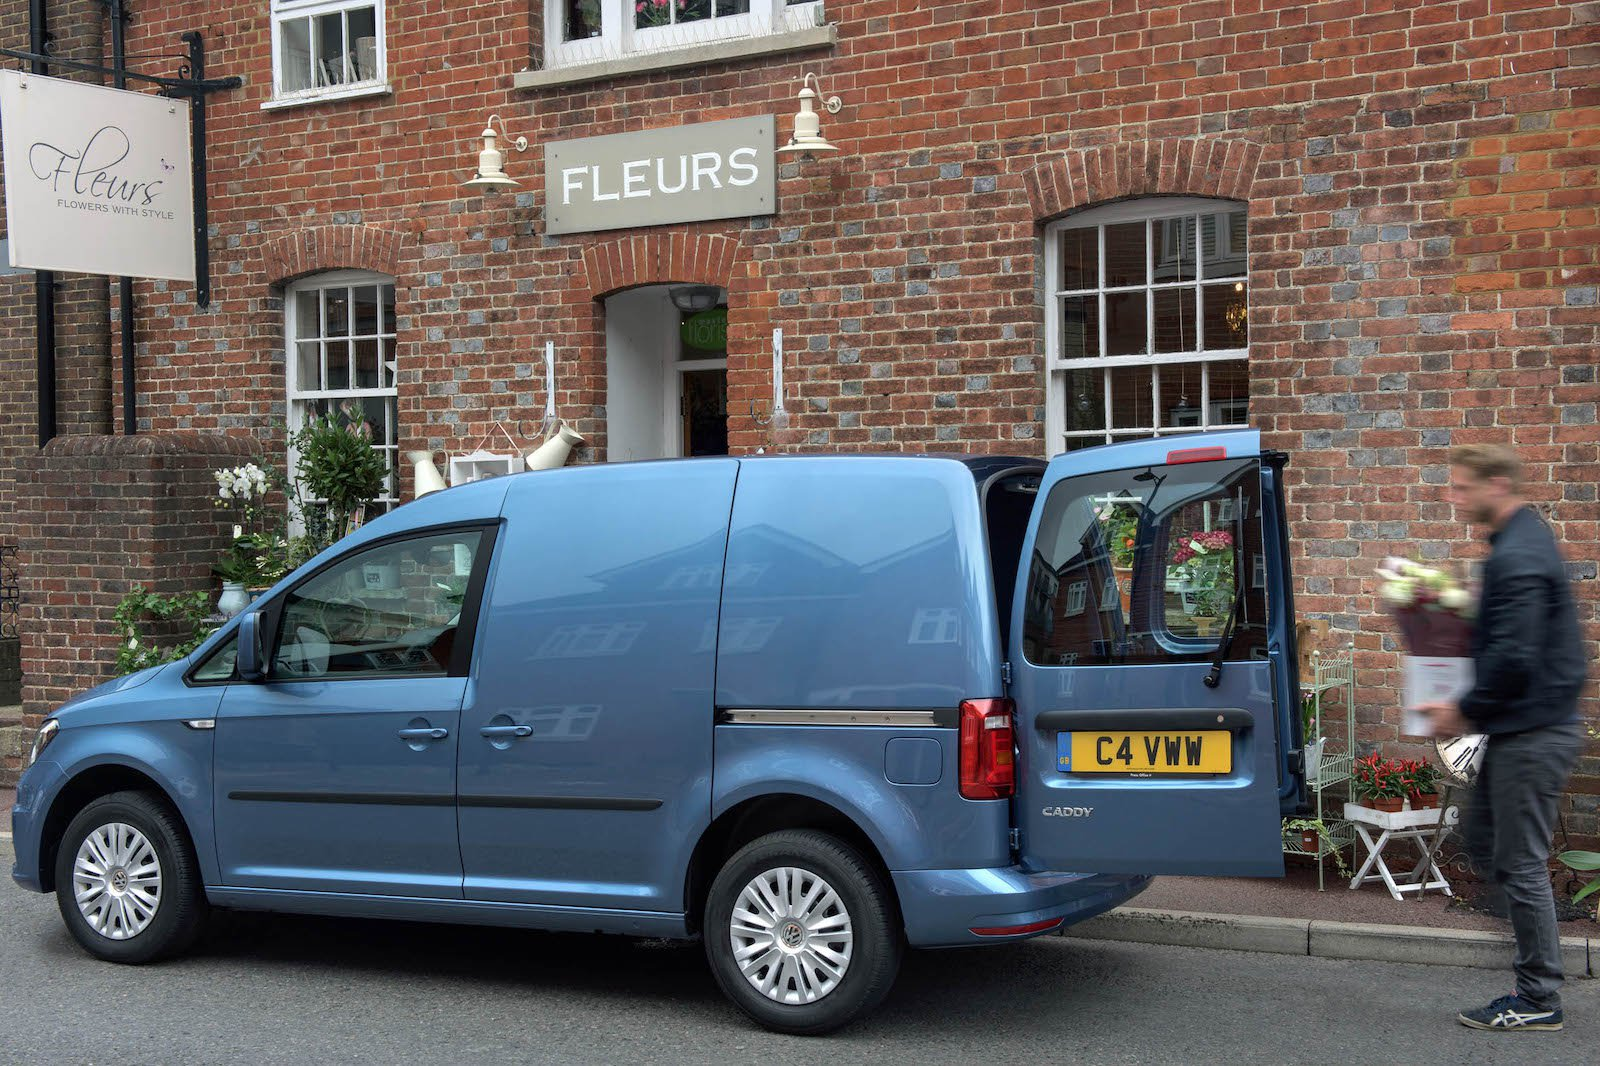 As the UK government unveils plans to ease the Covid-19 lockdown, here's how to keep your business (and vans) ready for action